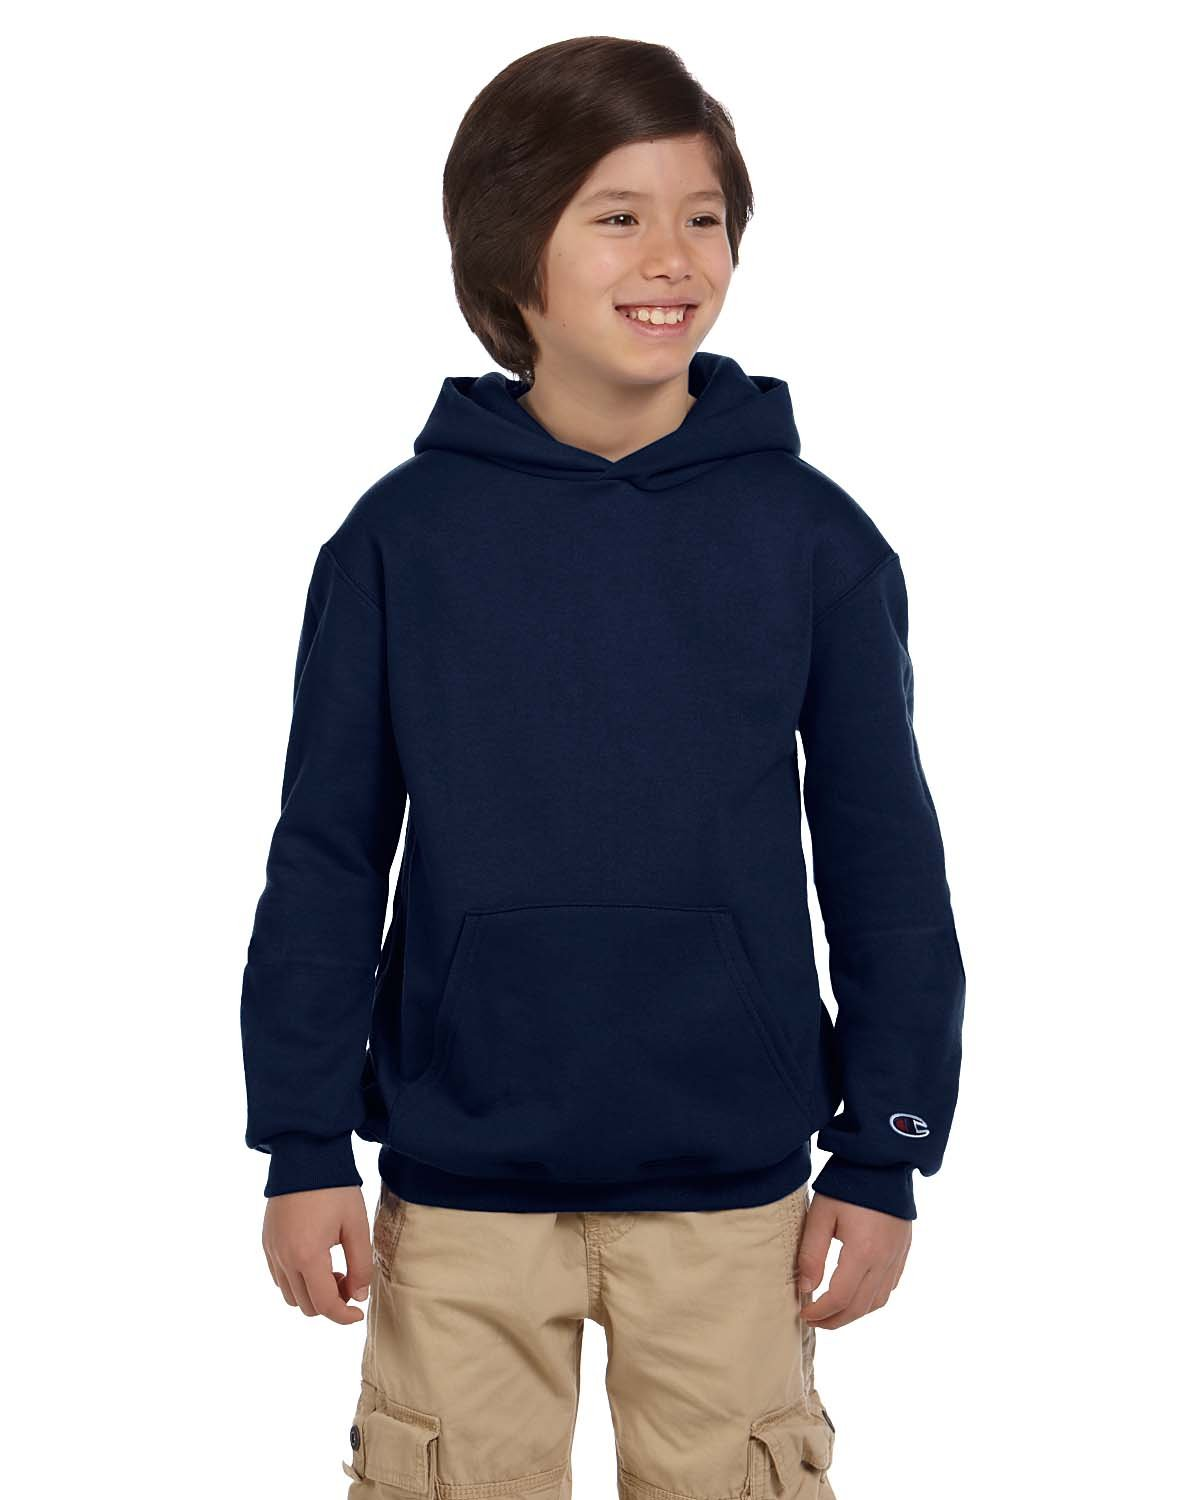 Champion Youth Eco Youth 9 oz. Pullover Hood S790